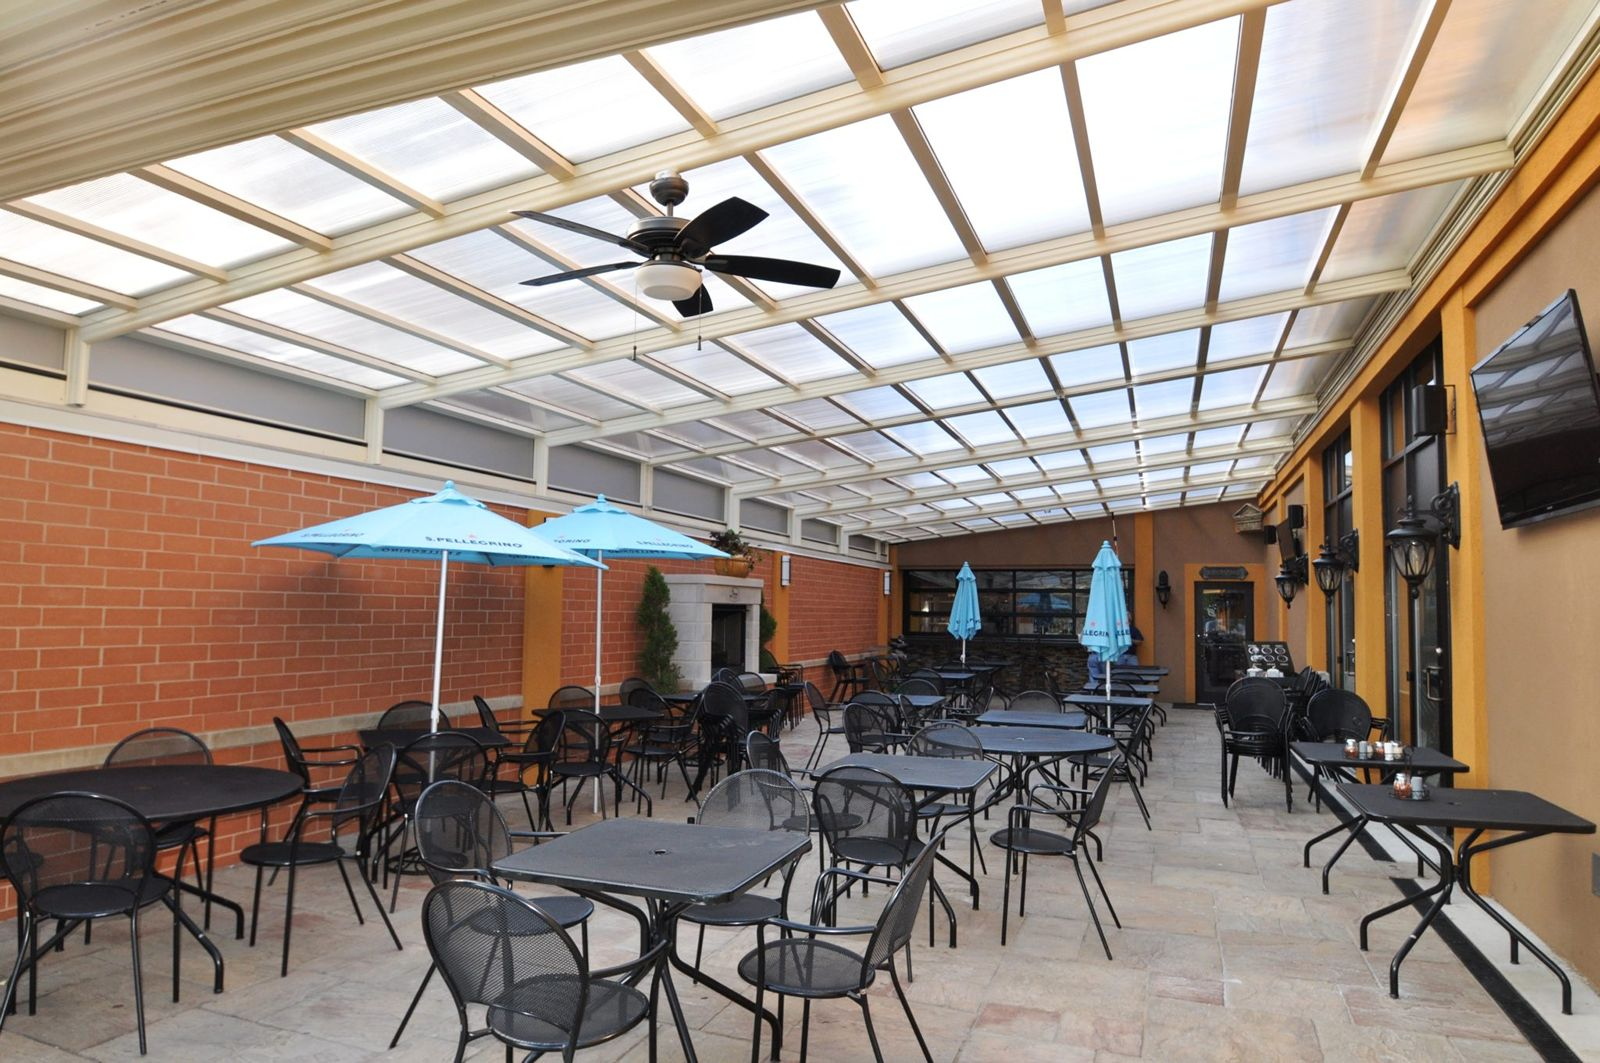 6 Chicago Restaurants Open Year-Round with Retractable Roofs